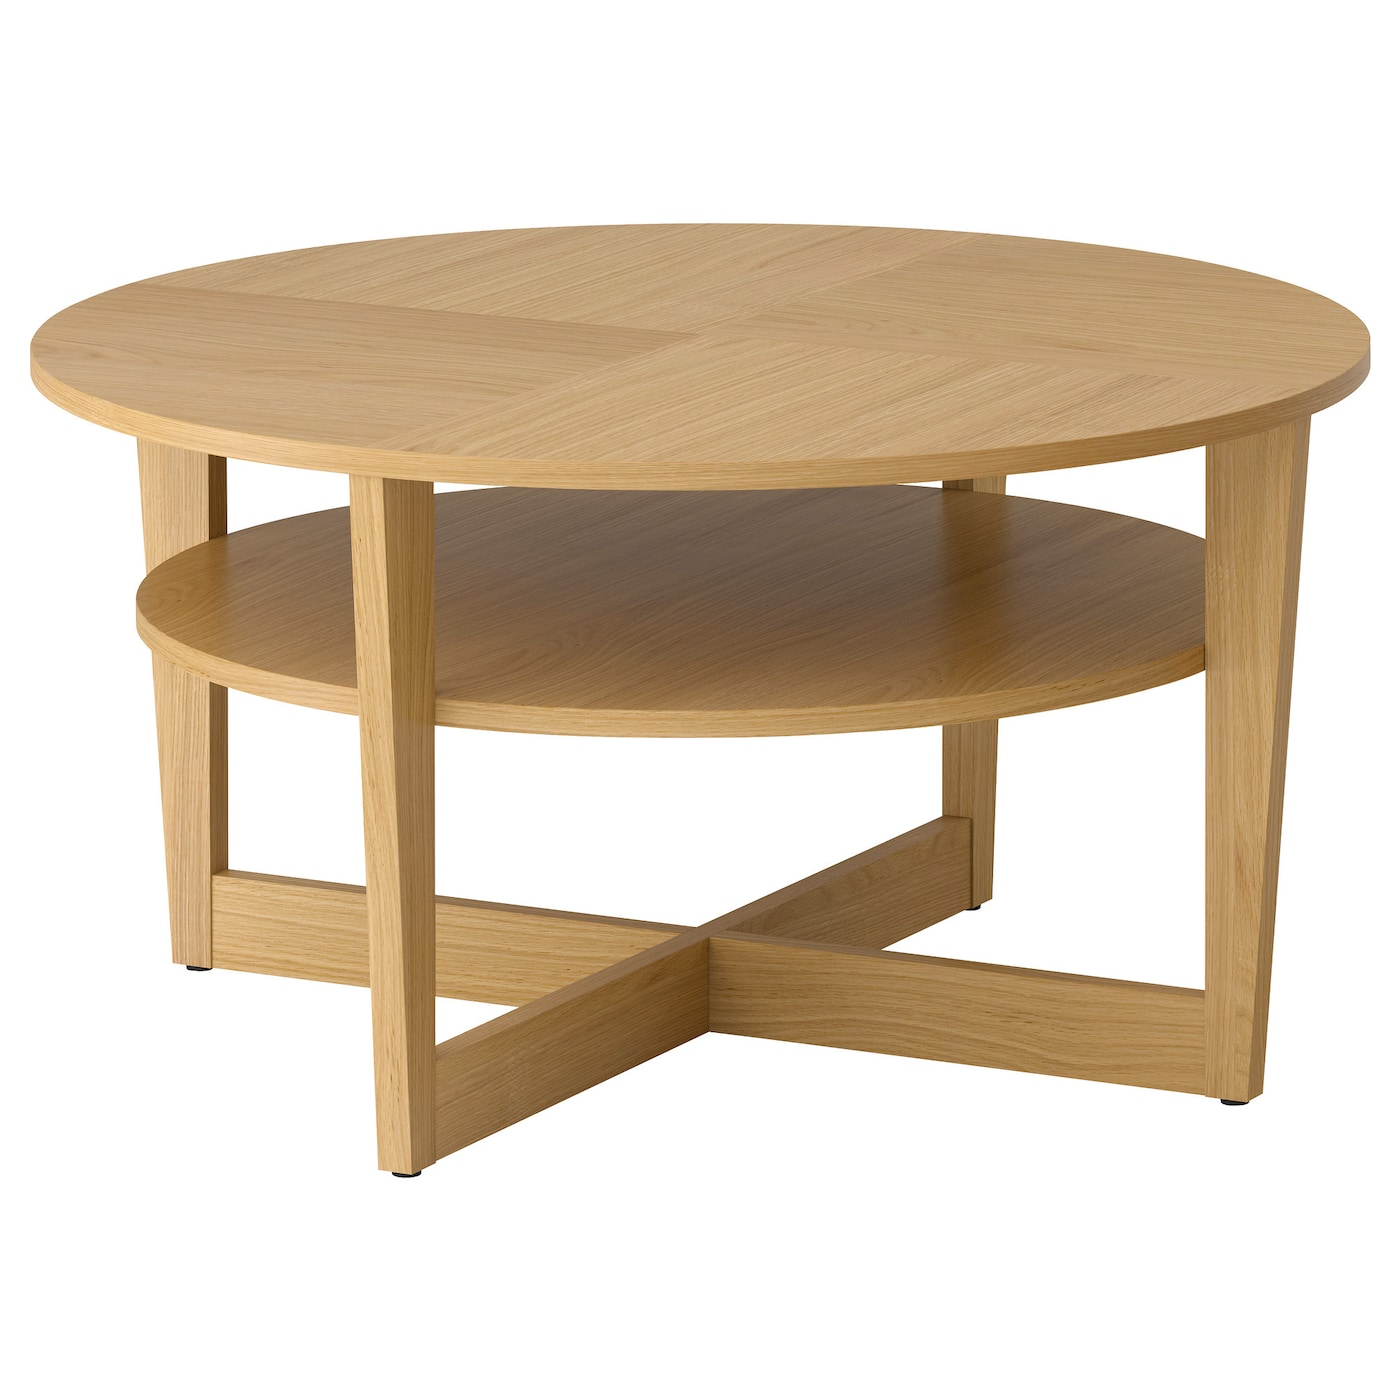 Coffee side tables ikea ireland dublin for Table basse scandinave ronde copenhague 80